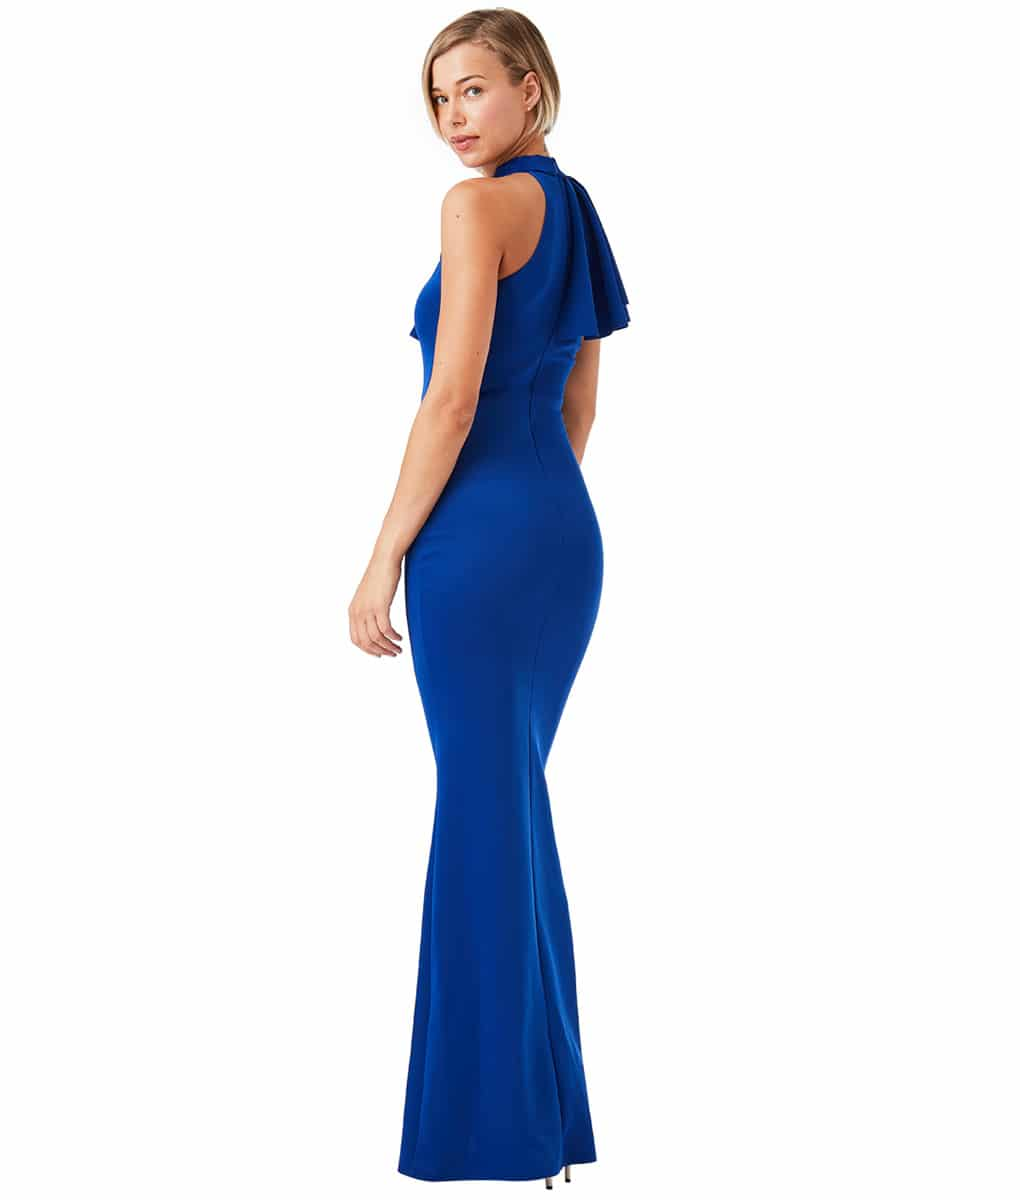 Alila-Royal-Blue-Ruffle-Gown-City-Goddess